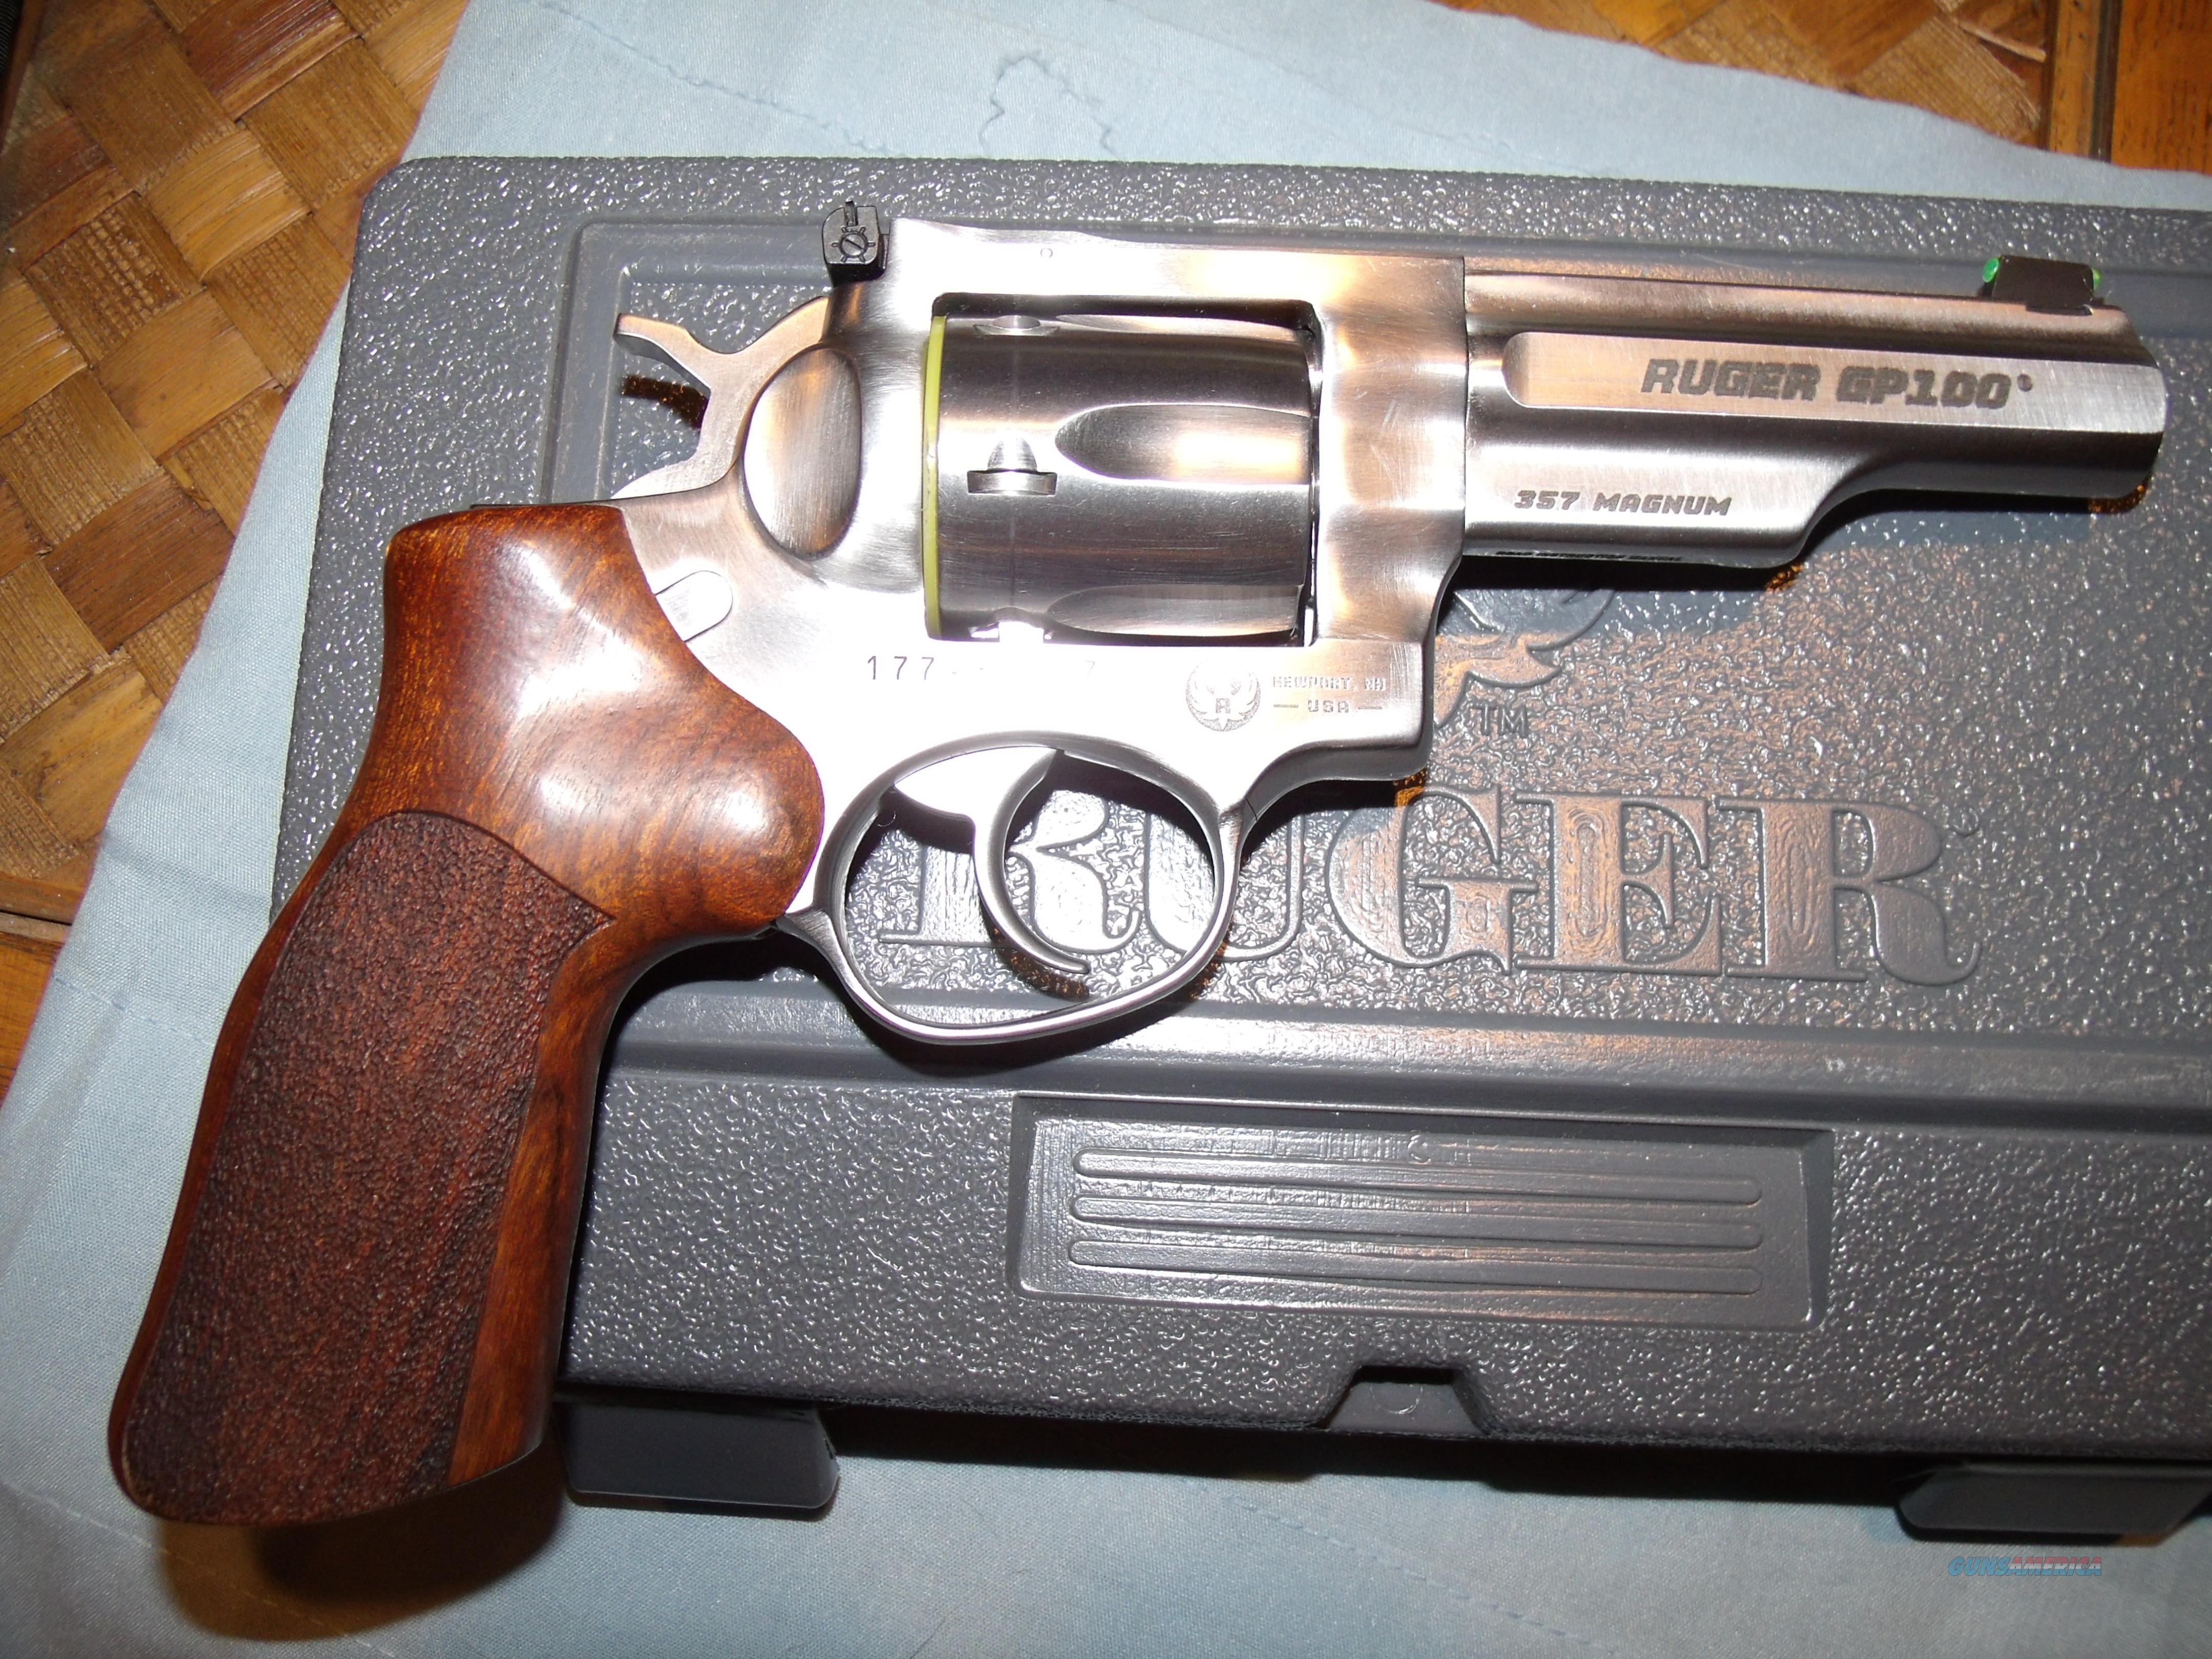 RUGER GP100 MATCH KING  .357 MAG  Guns > Pistols > Ruger Double Action Revolver > GP100